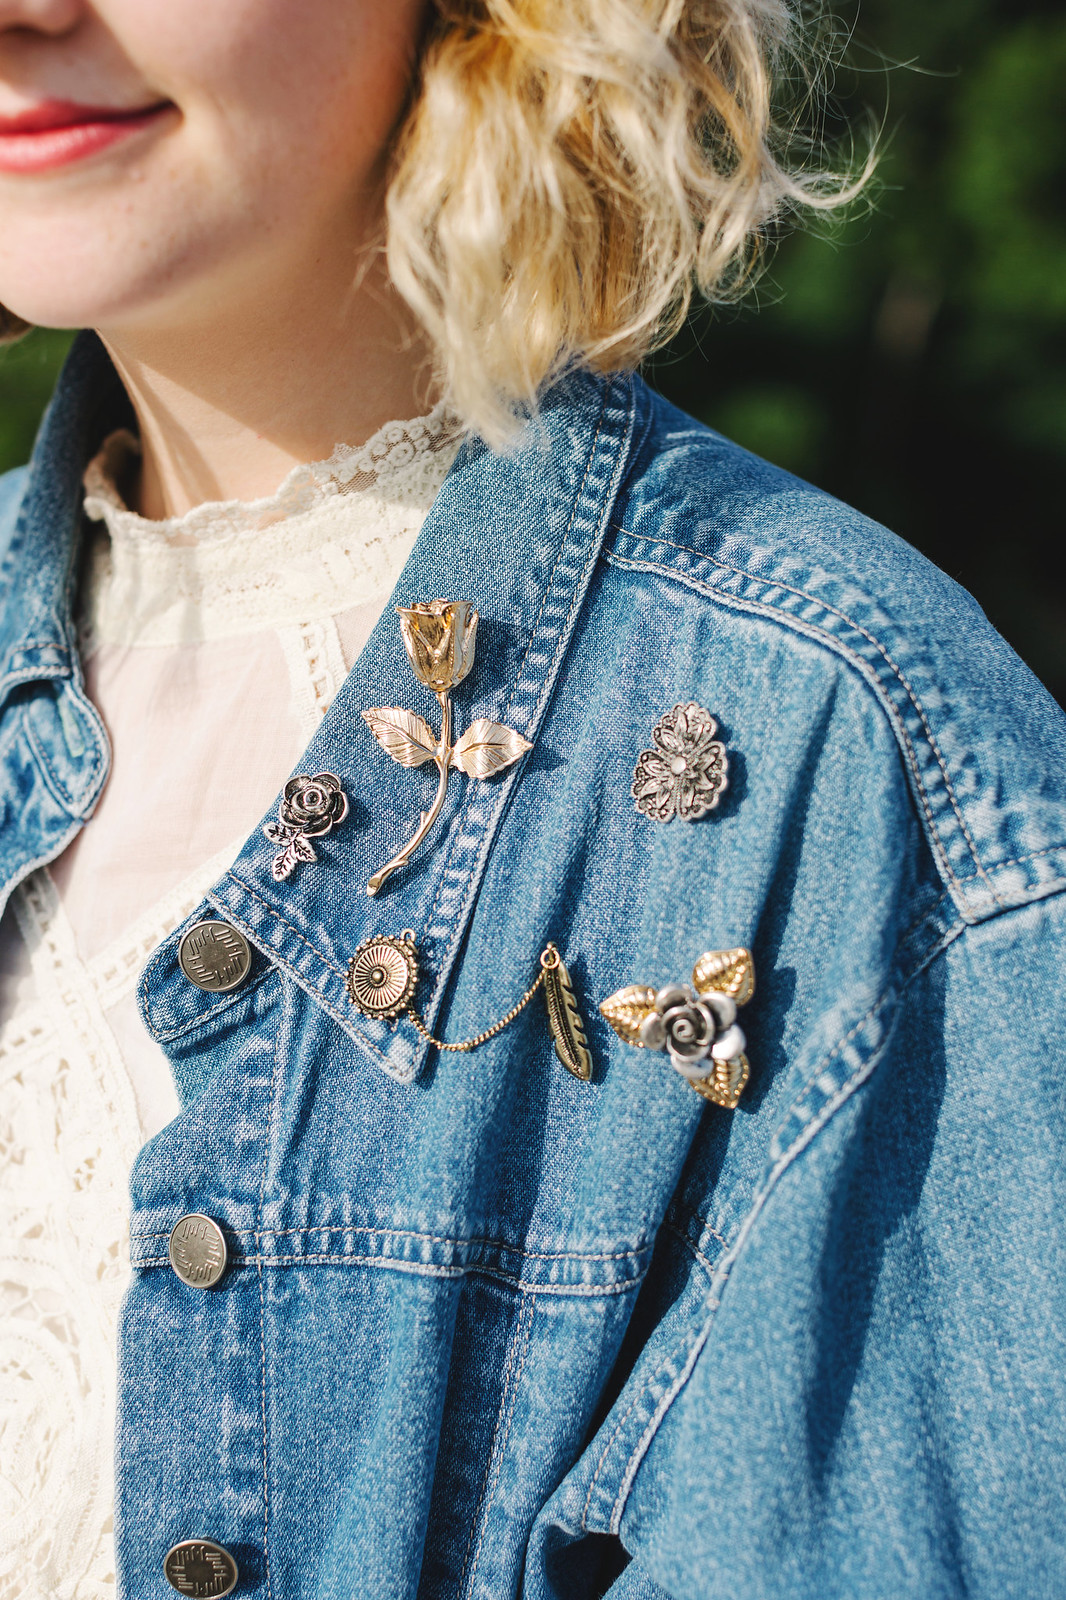 An updated and elevated take on the pin trend. // Photo for Free People by Lena Mirisola on juliettelaura.blogspot.com